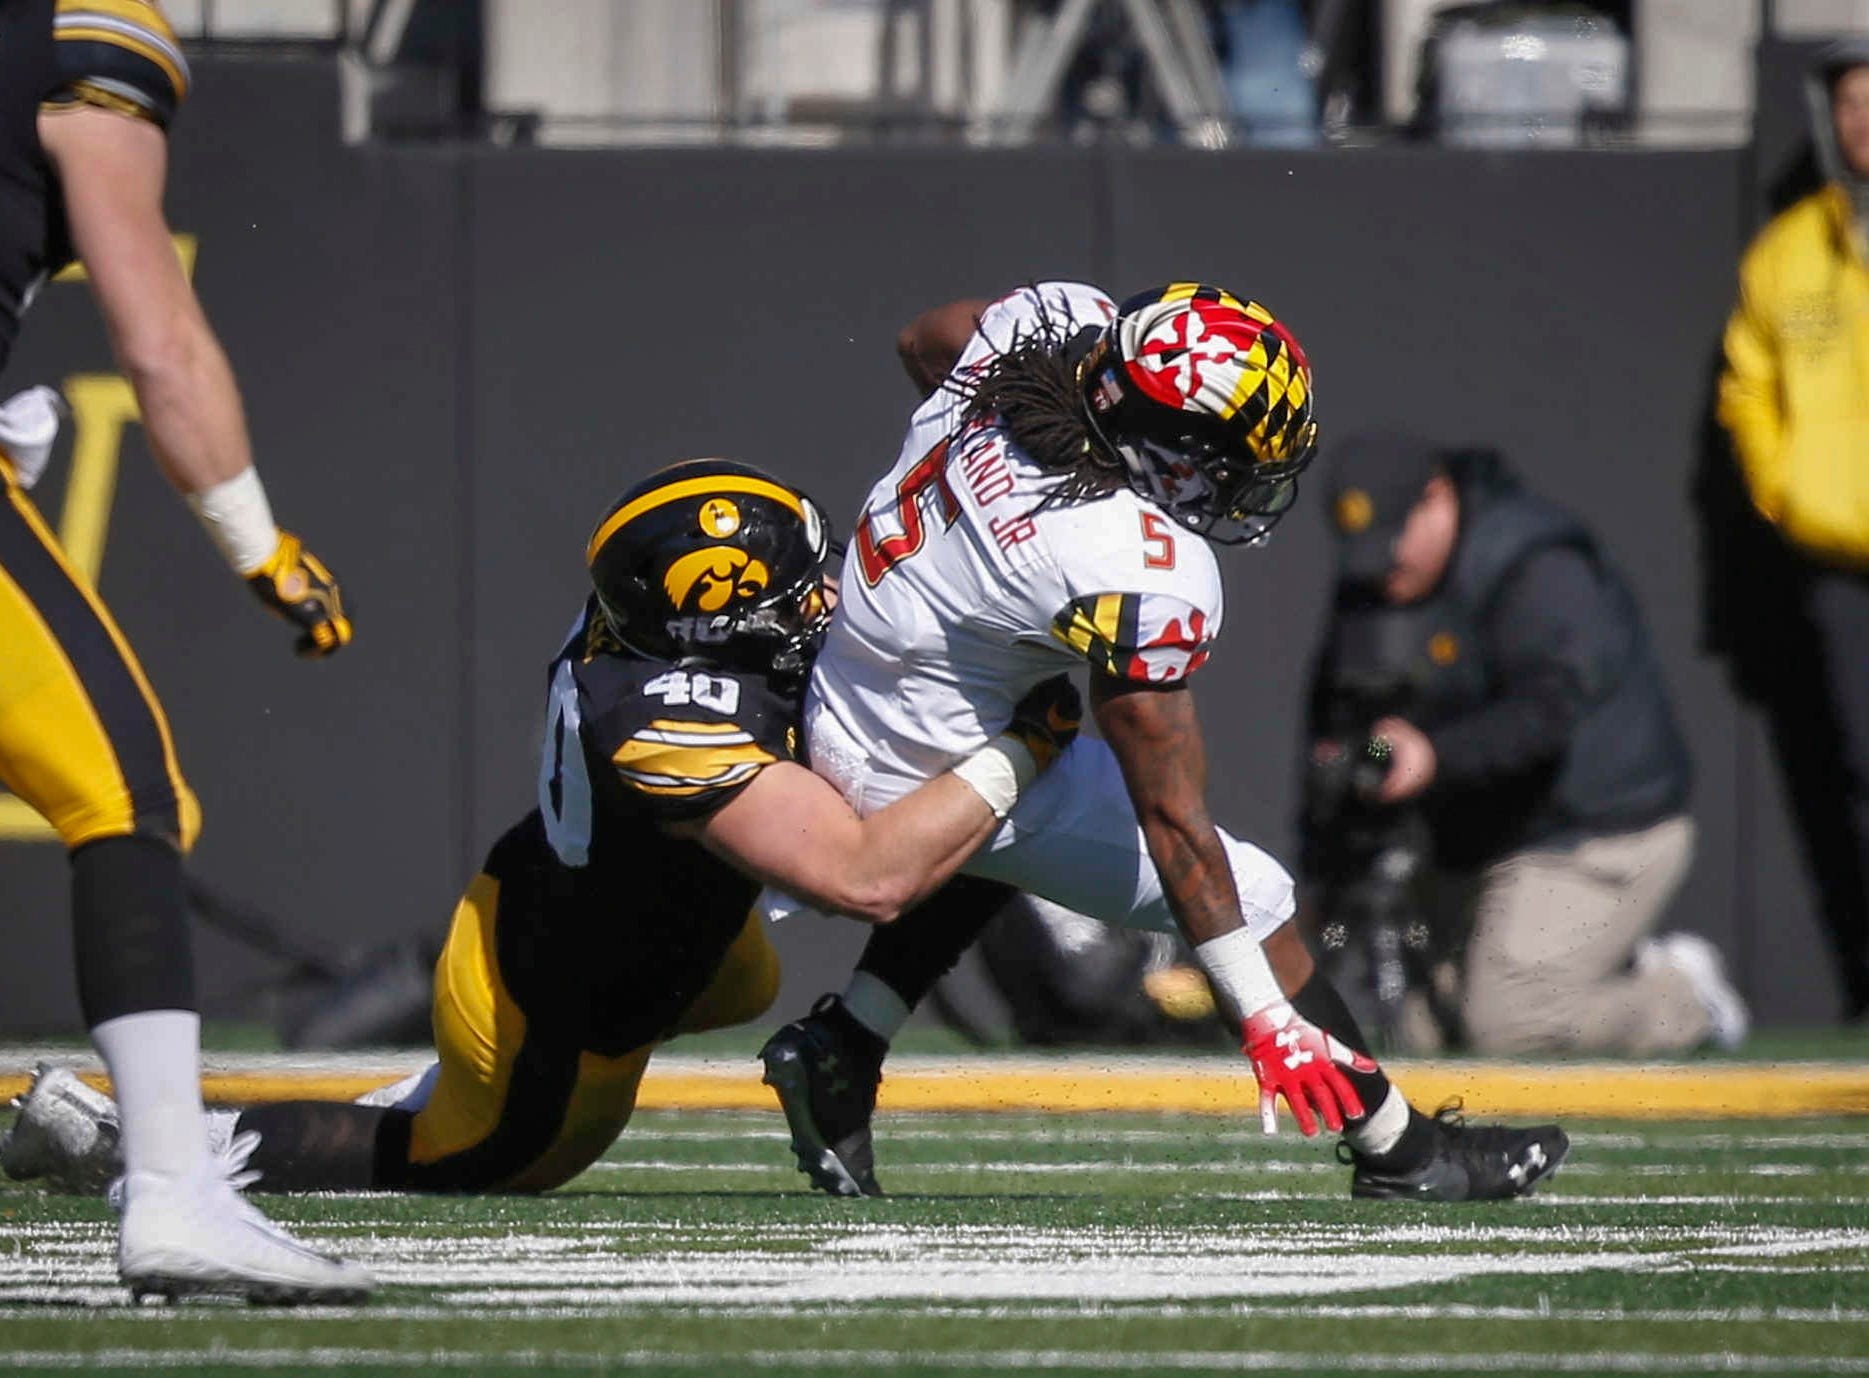 Iowa right end Parker Hesse tackles Maryland running back Anthony McFarland for a loss on Saturday, Oct. 20, 2018, at Kinnick Stadium in Iowa City.